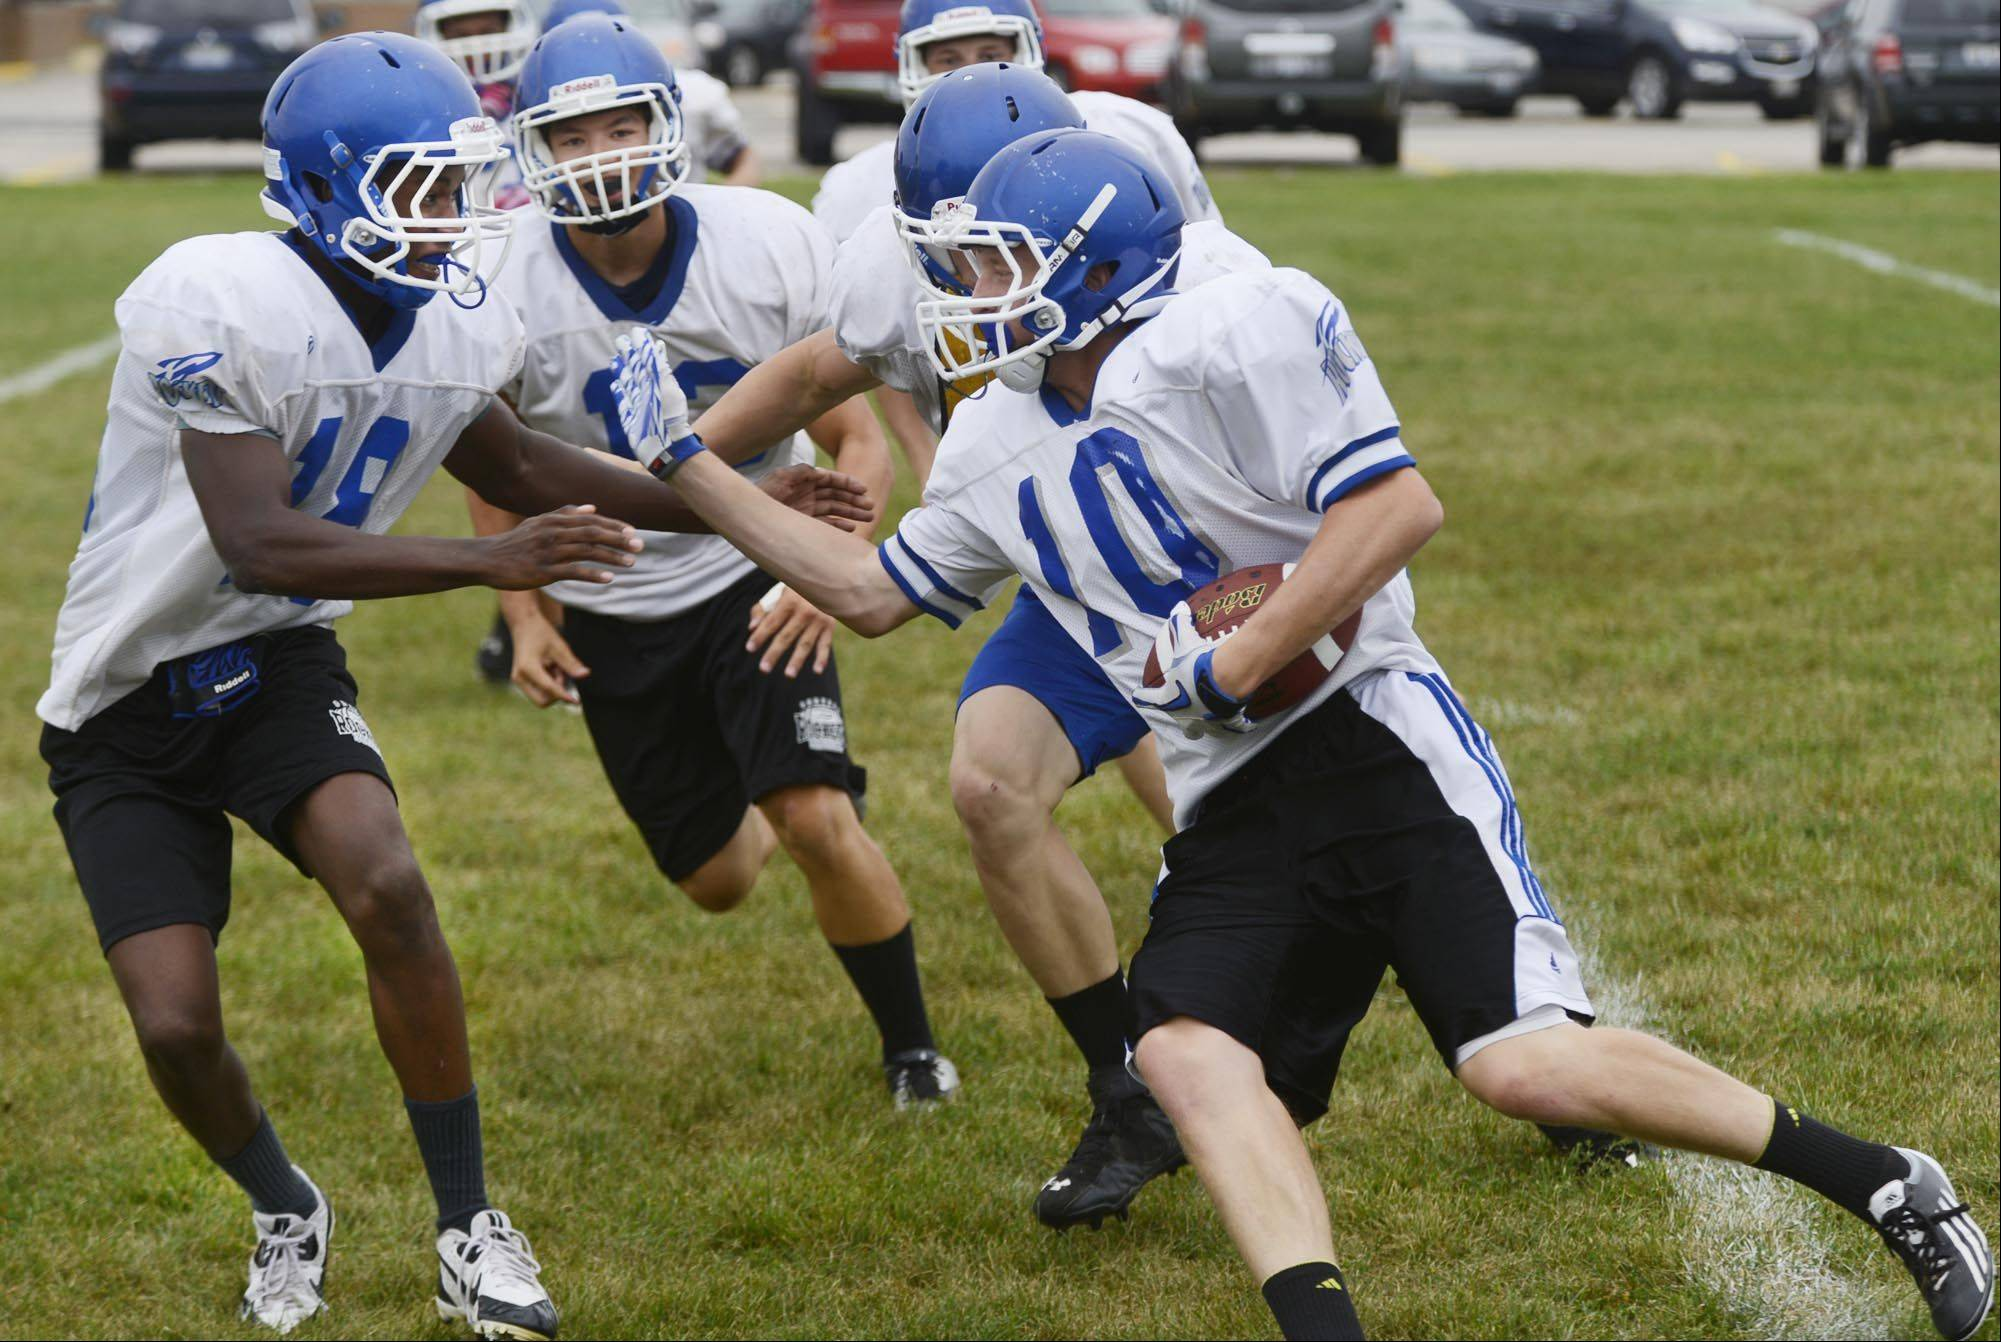 A.J. Fisher runs the ball at a Burlington Central football practice.